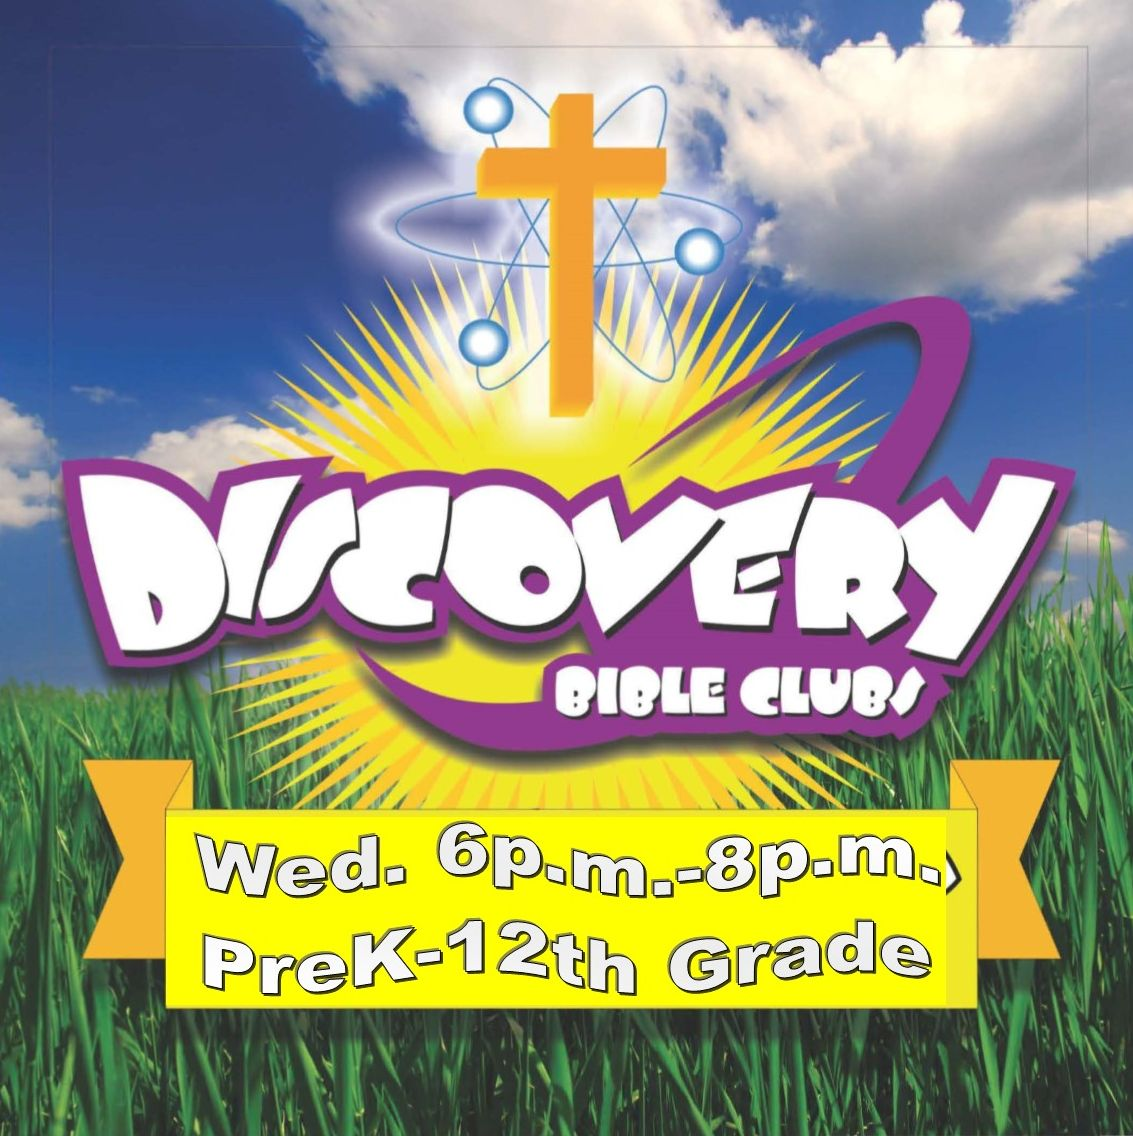 The discovery bible study